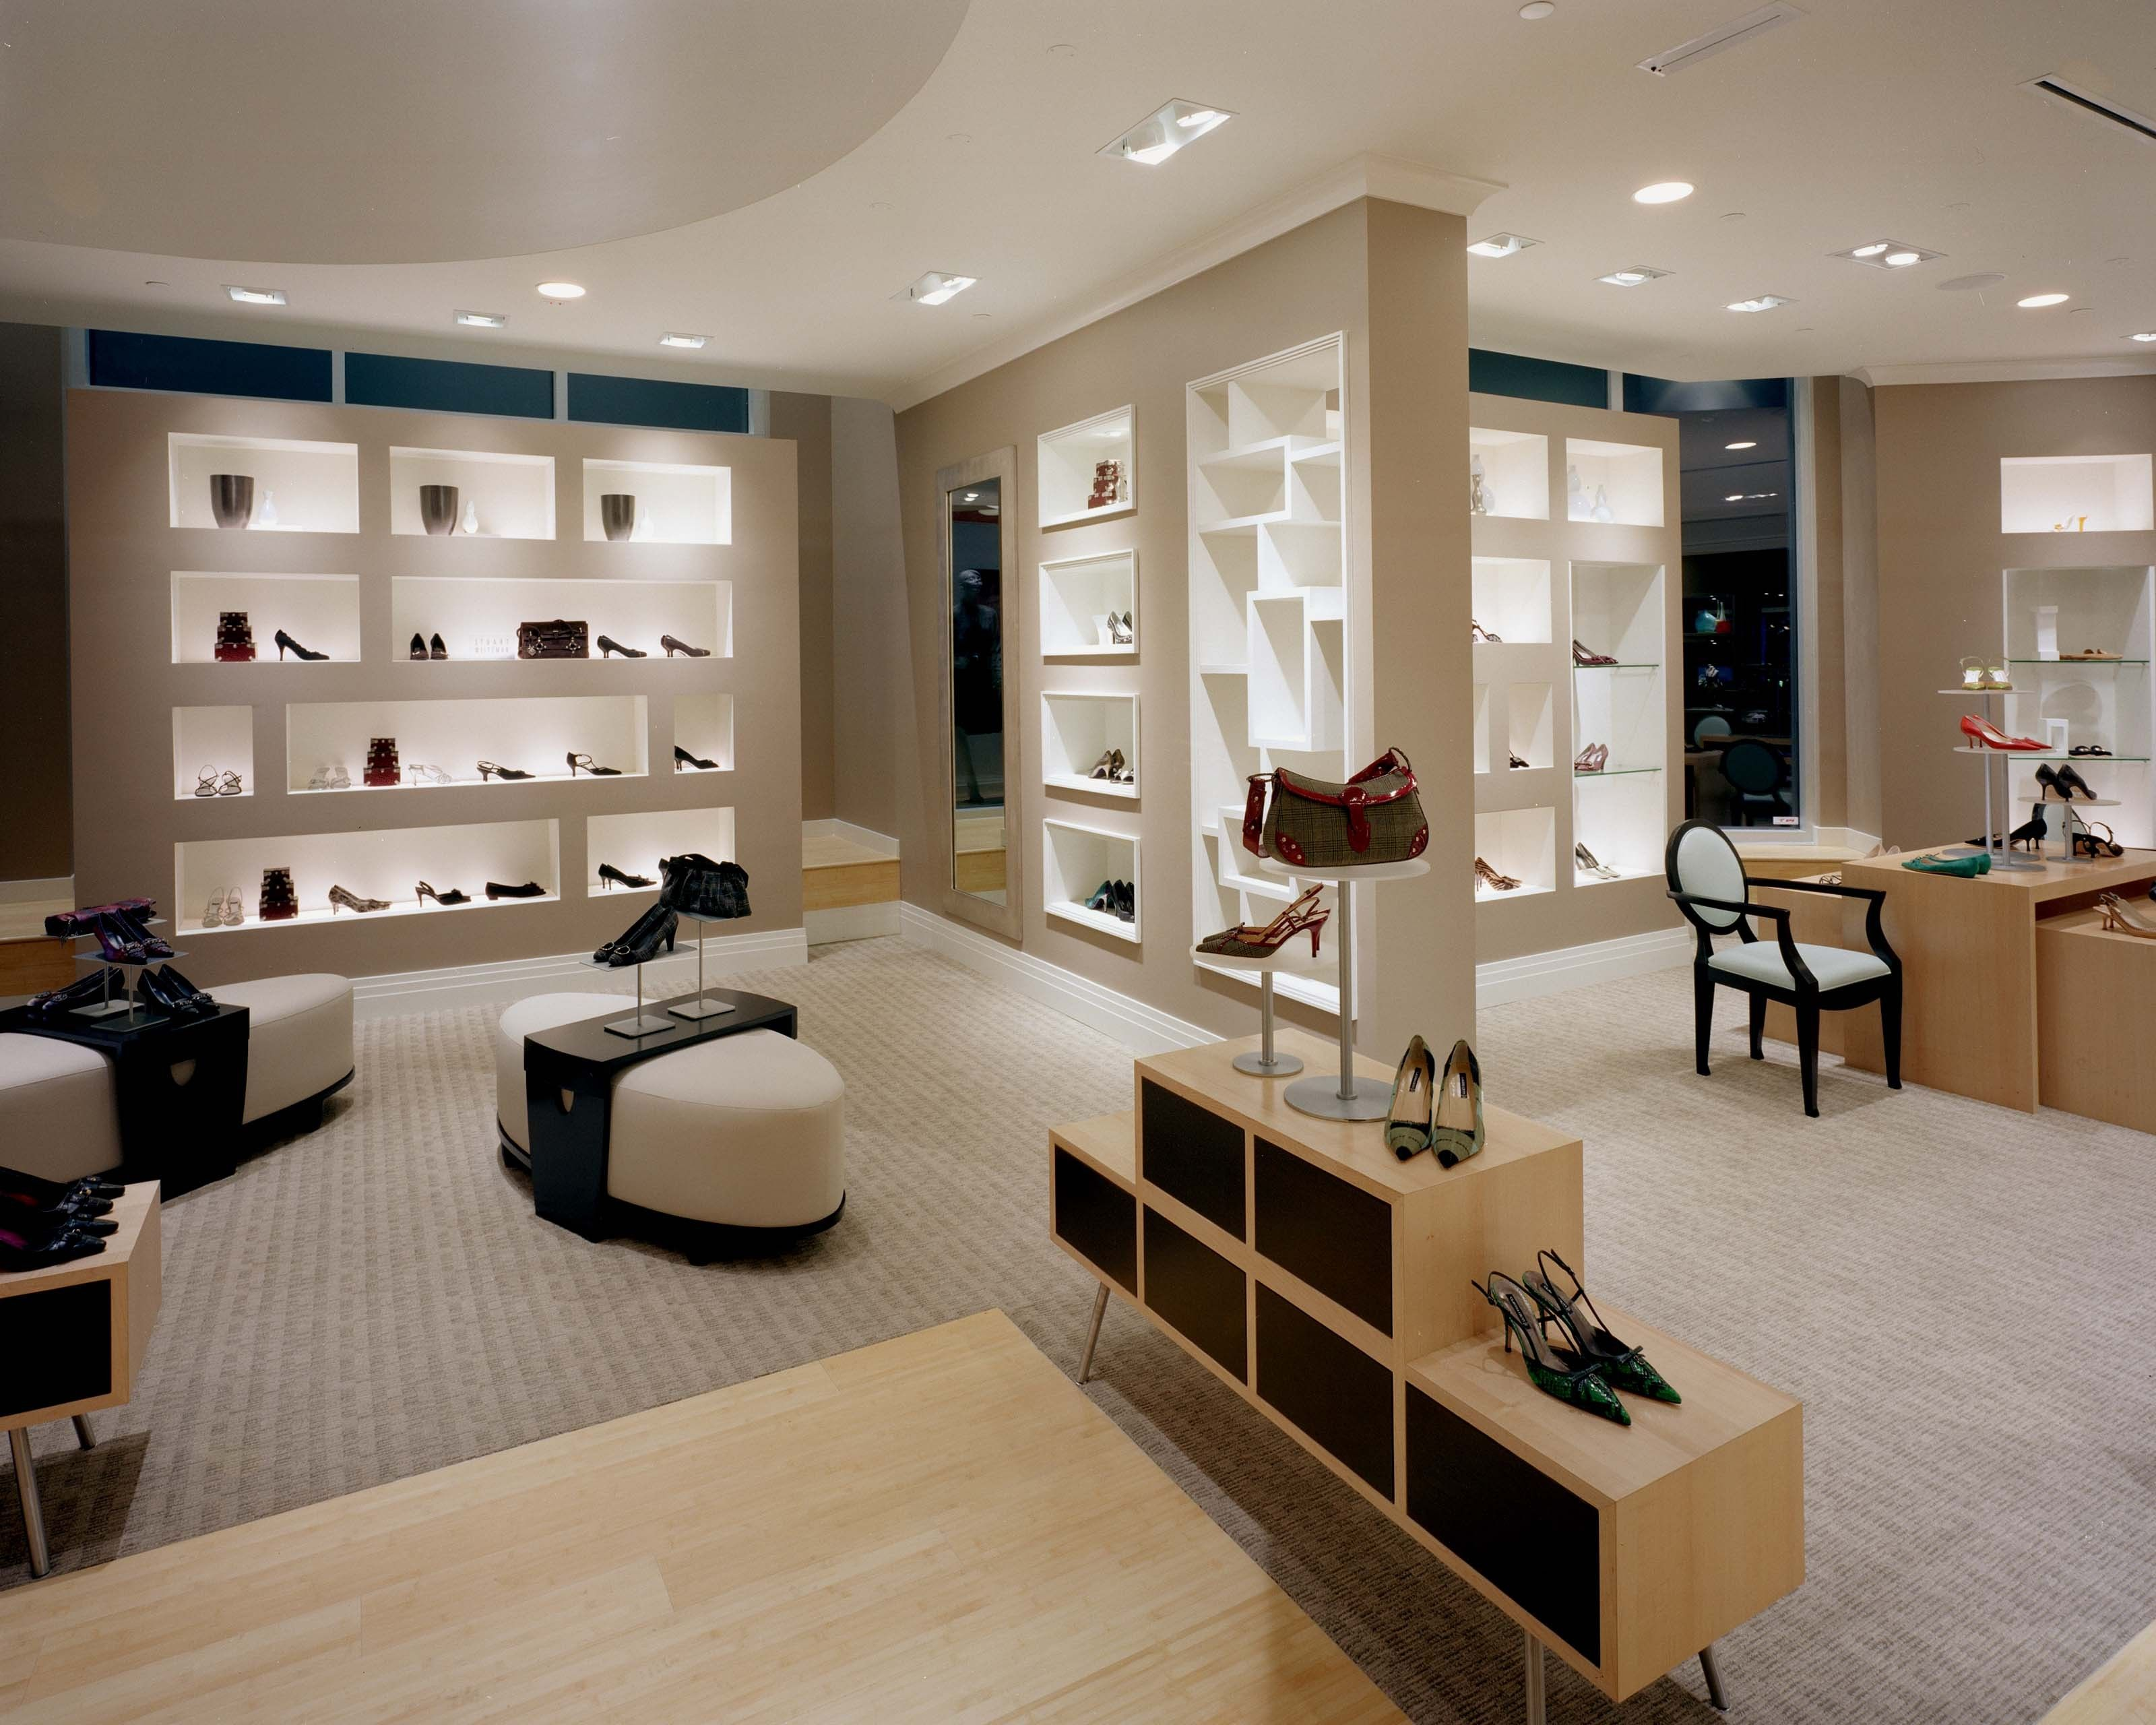 15 Tips for How to Design Your Retail store | Design trends ...